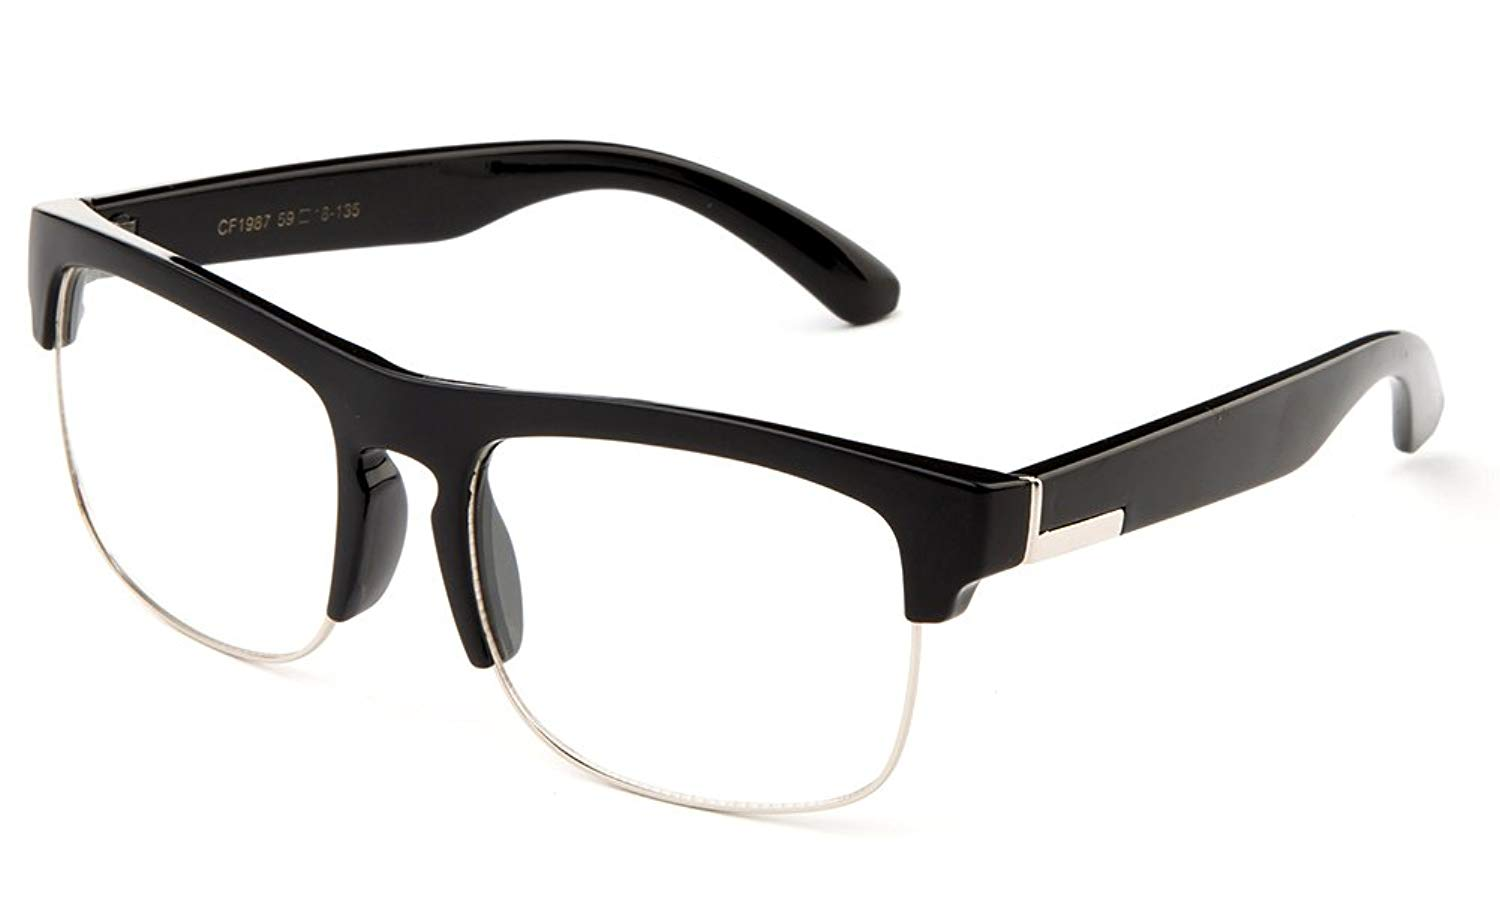 5e3cf3feae Get Quotations · Newbee Fashion- Half Frame Retro Over Size Large Reading  Glasses Readers Fashion Rimless